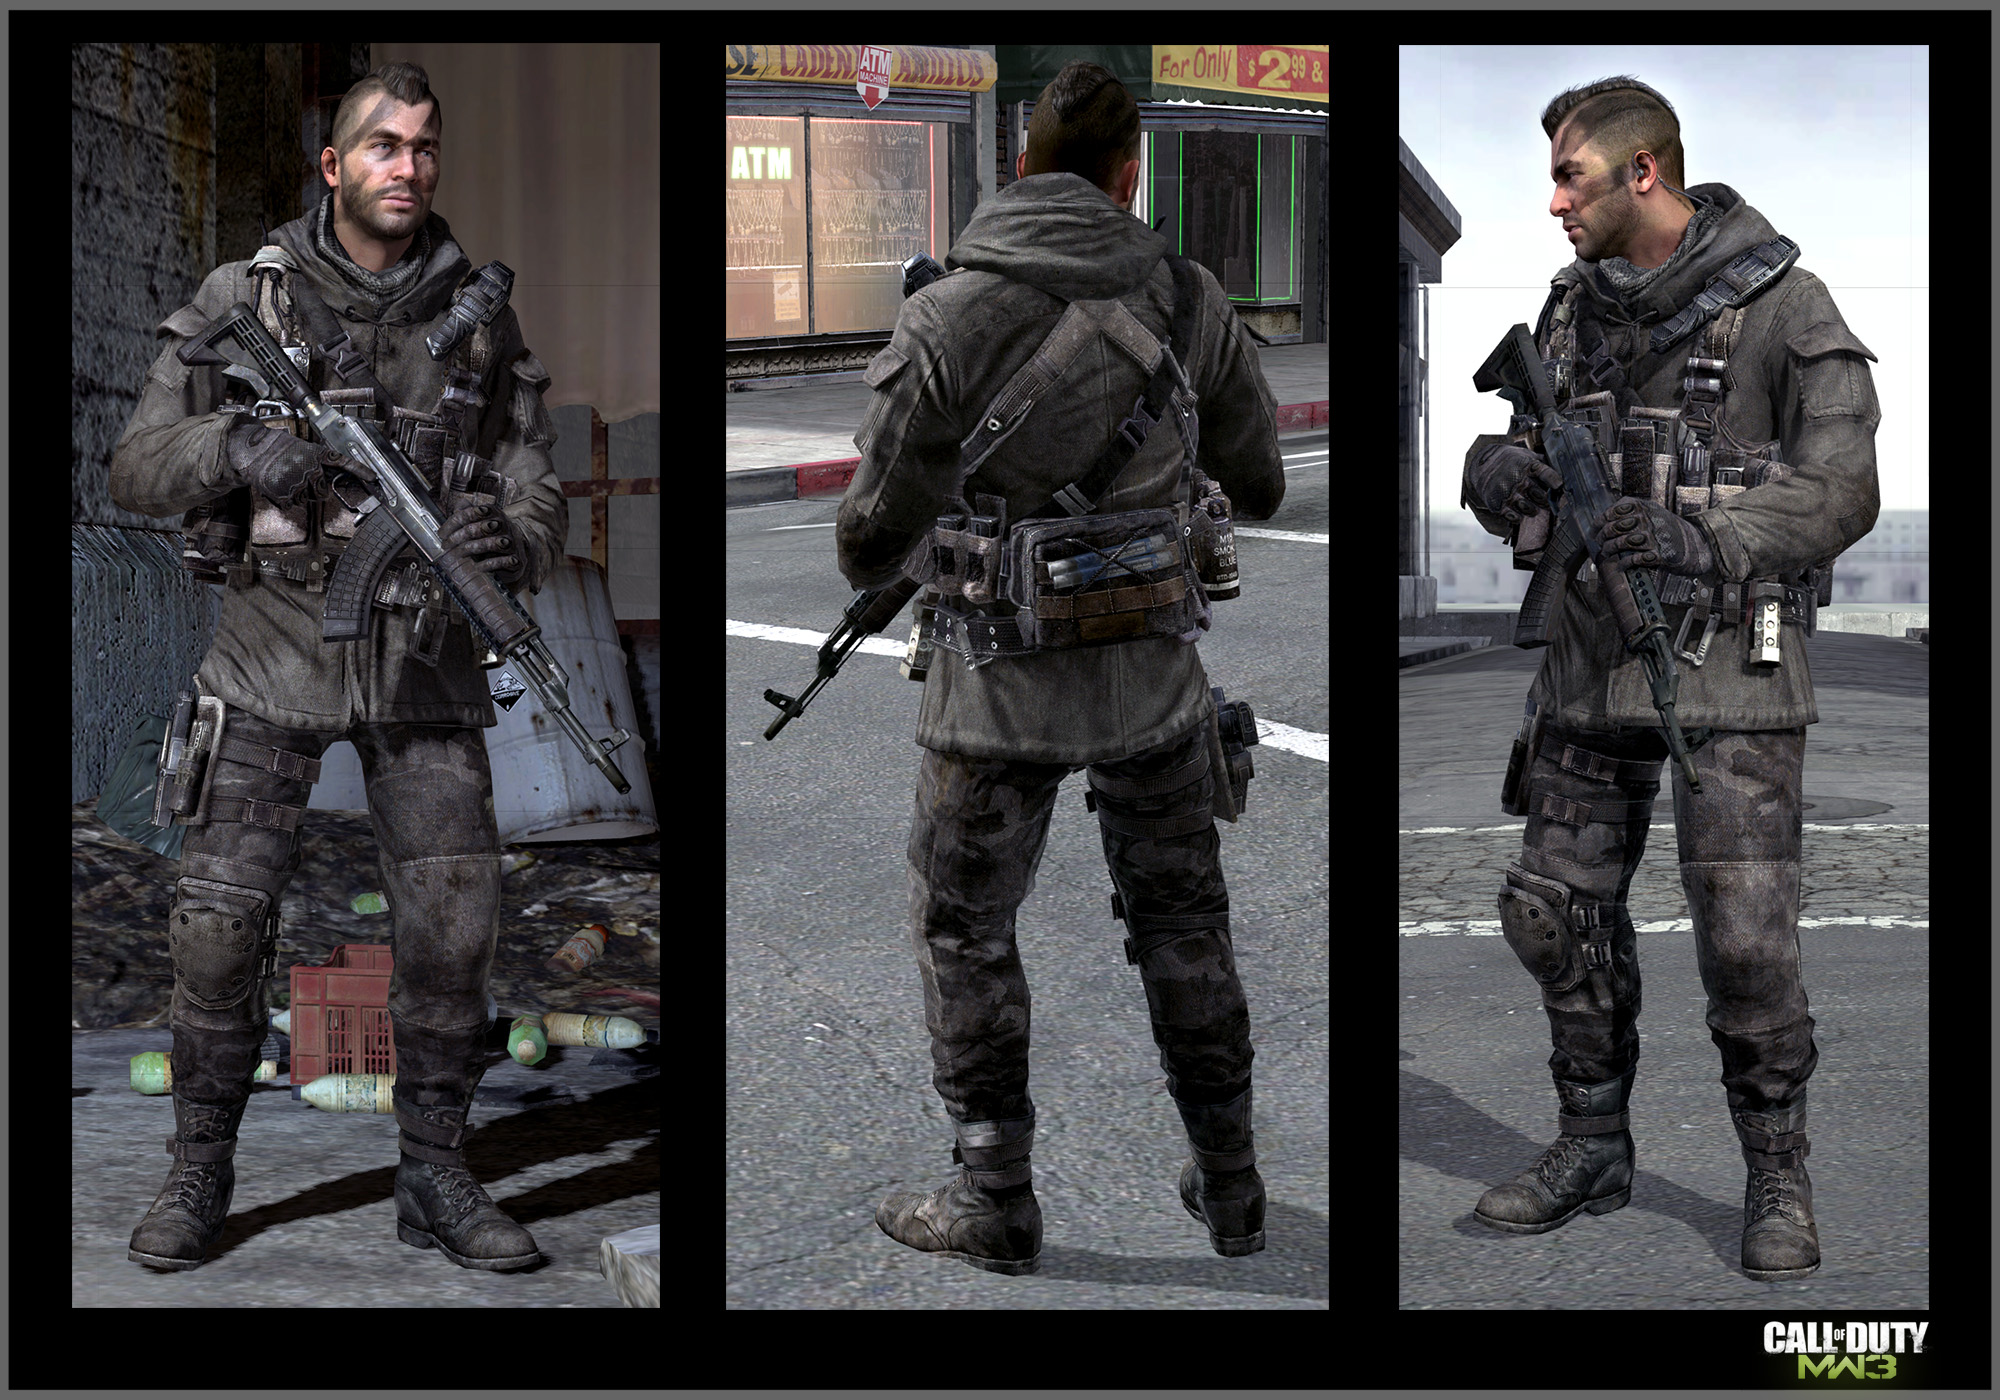 Call Of Duty Modern Warfare 3 Soap Mactavish Art Jake L